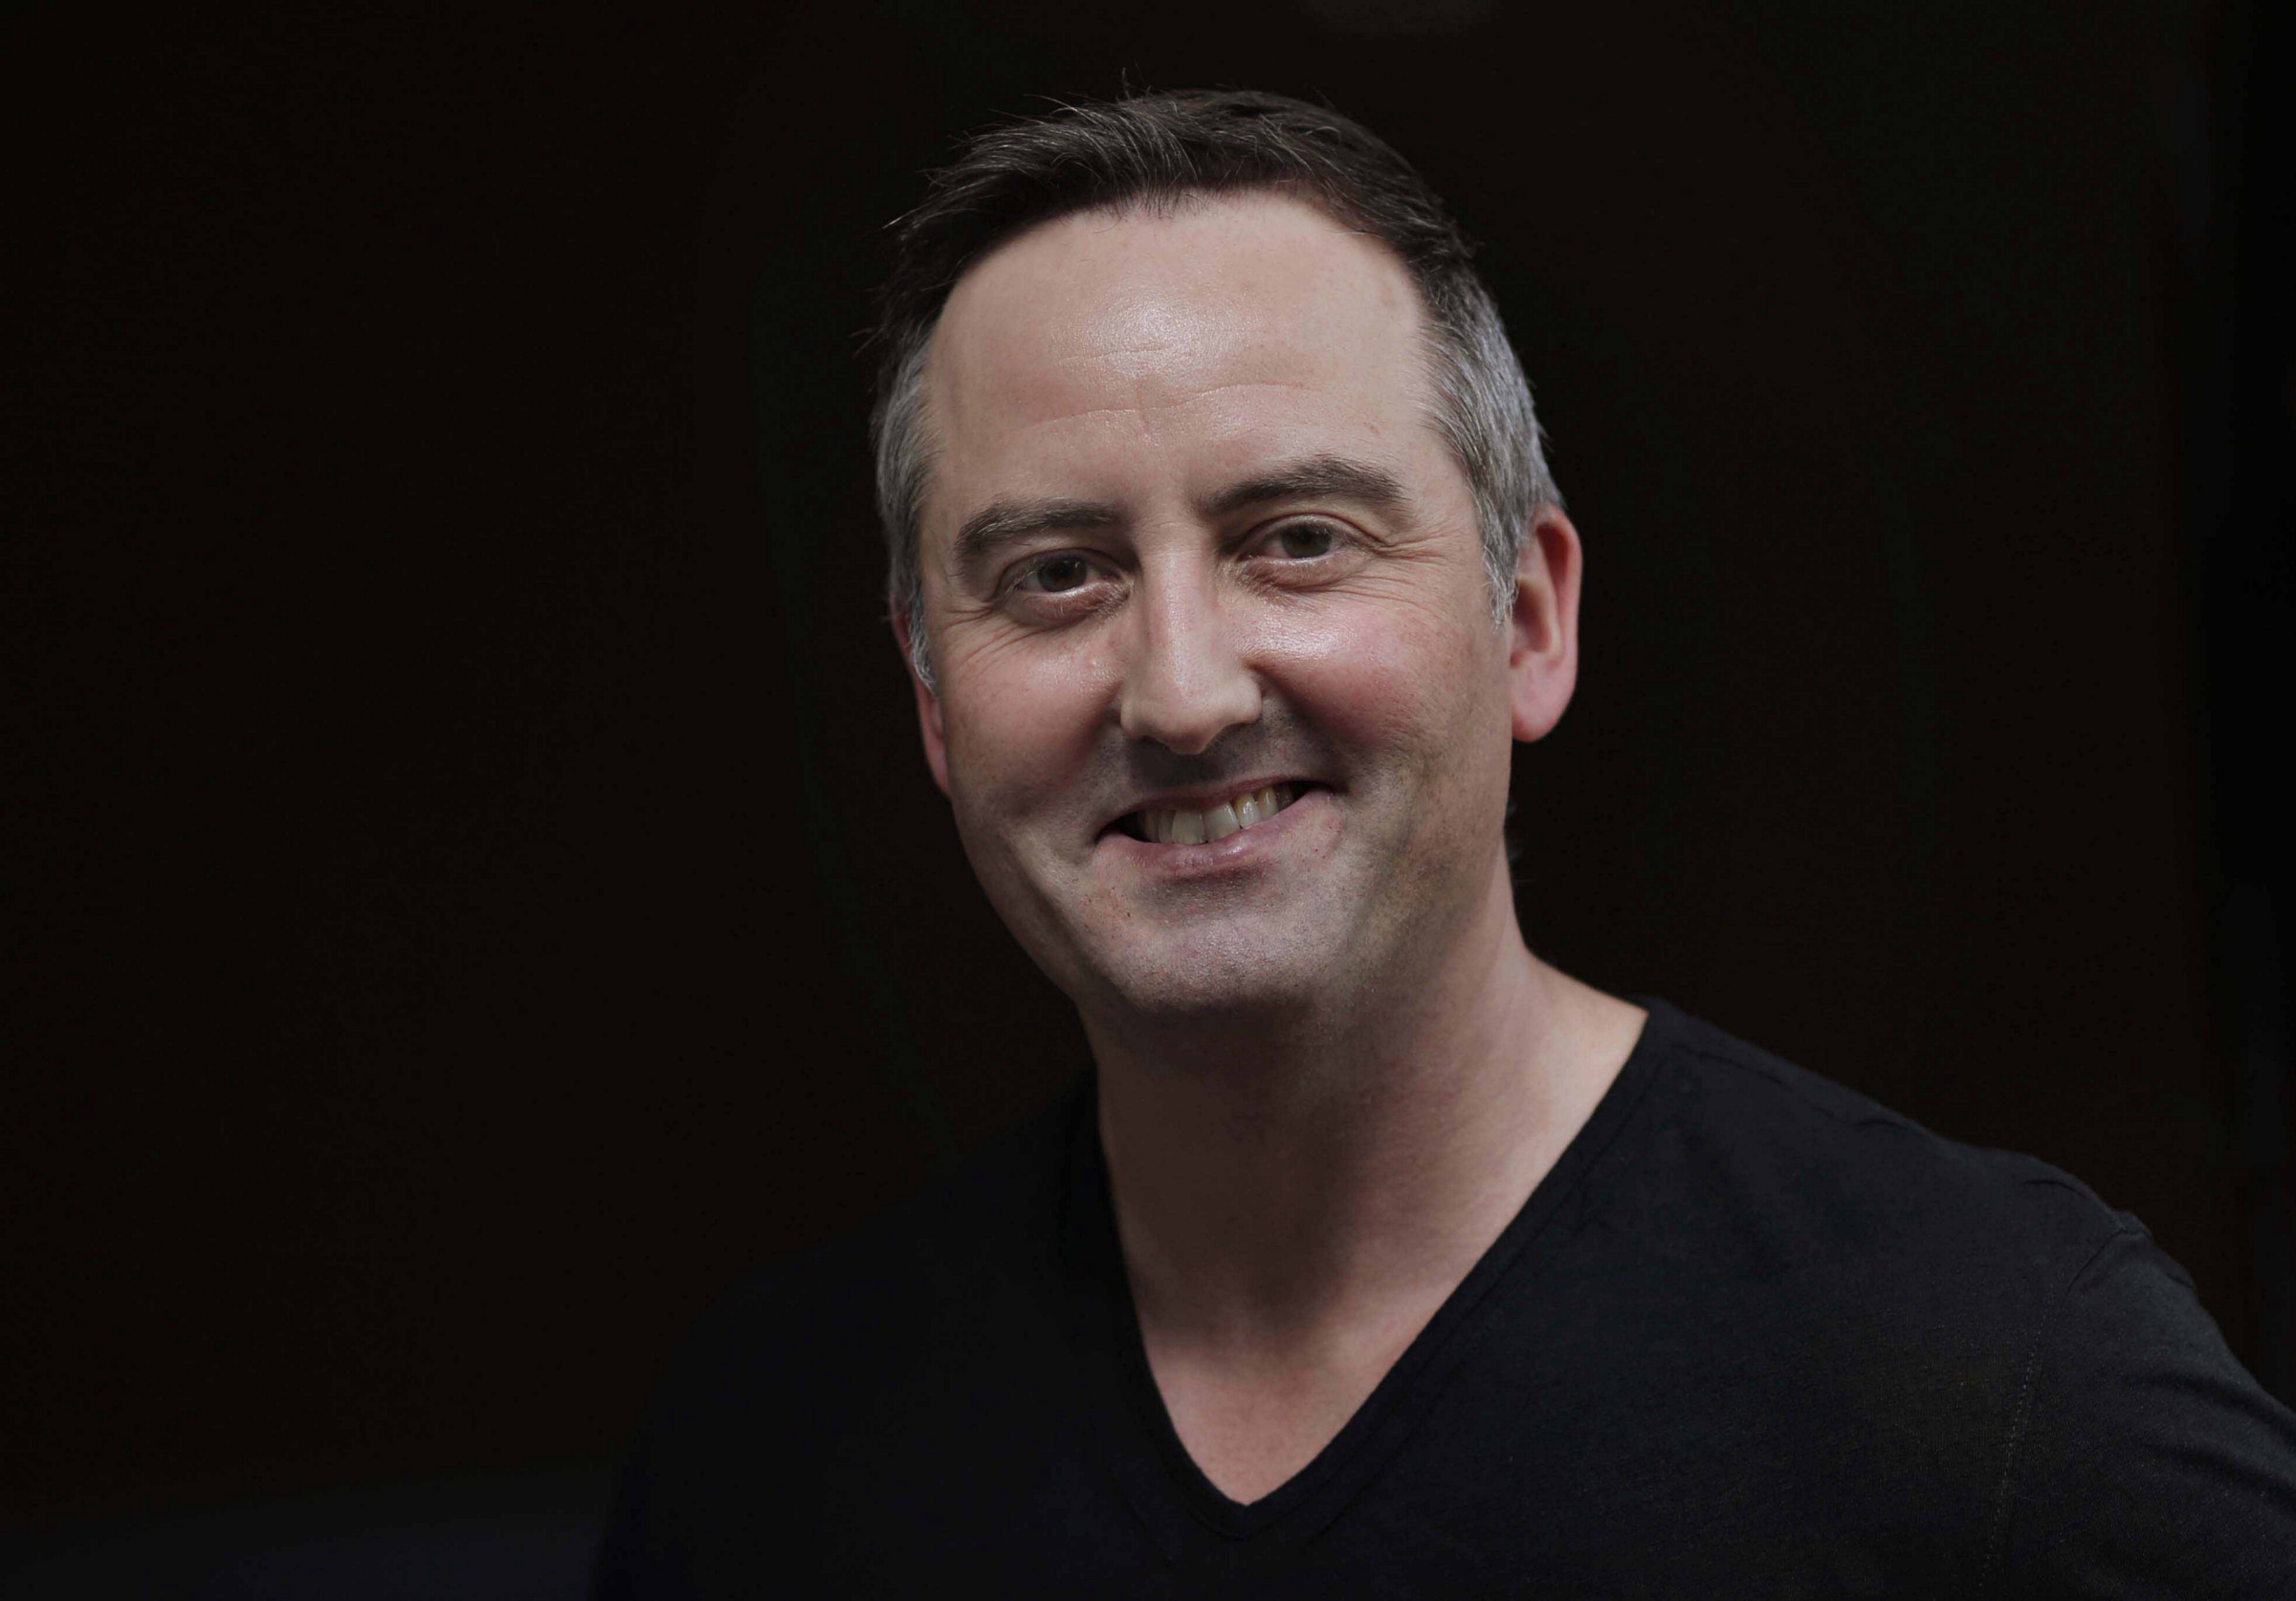 Picture of Paul Walsh, CEO and founder of Metacert